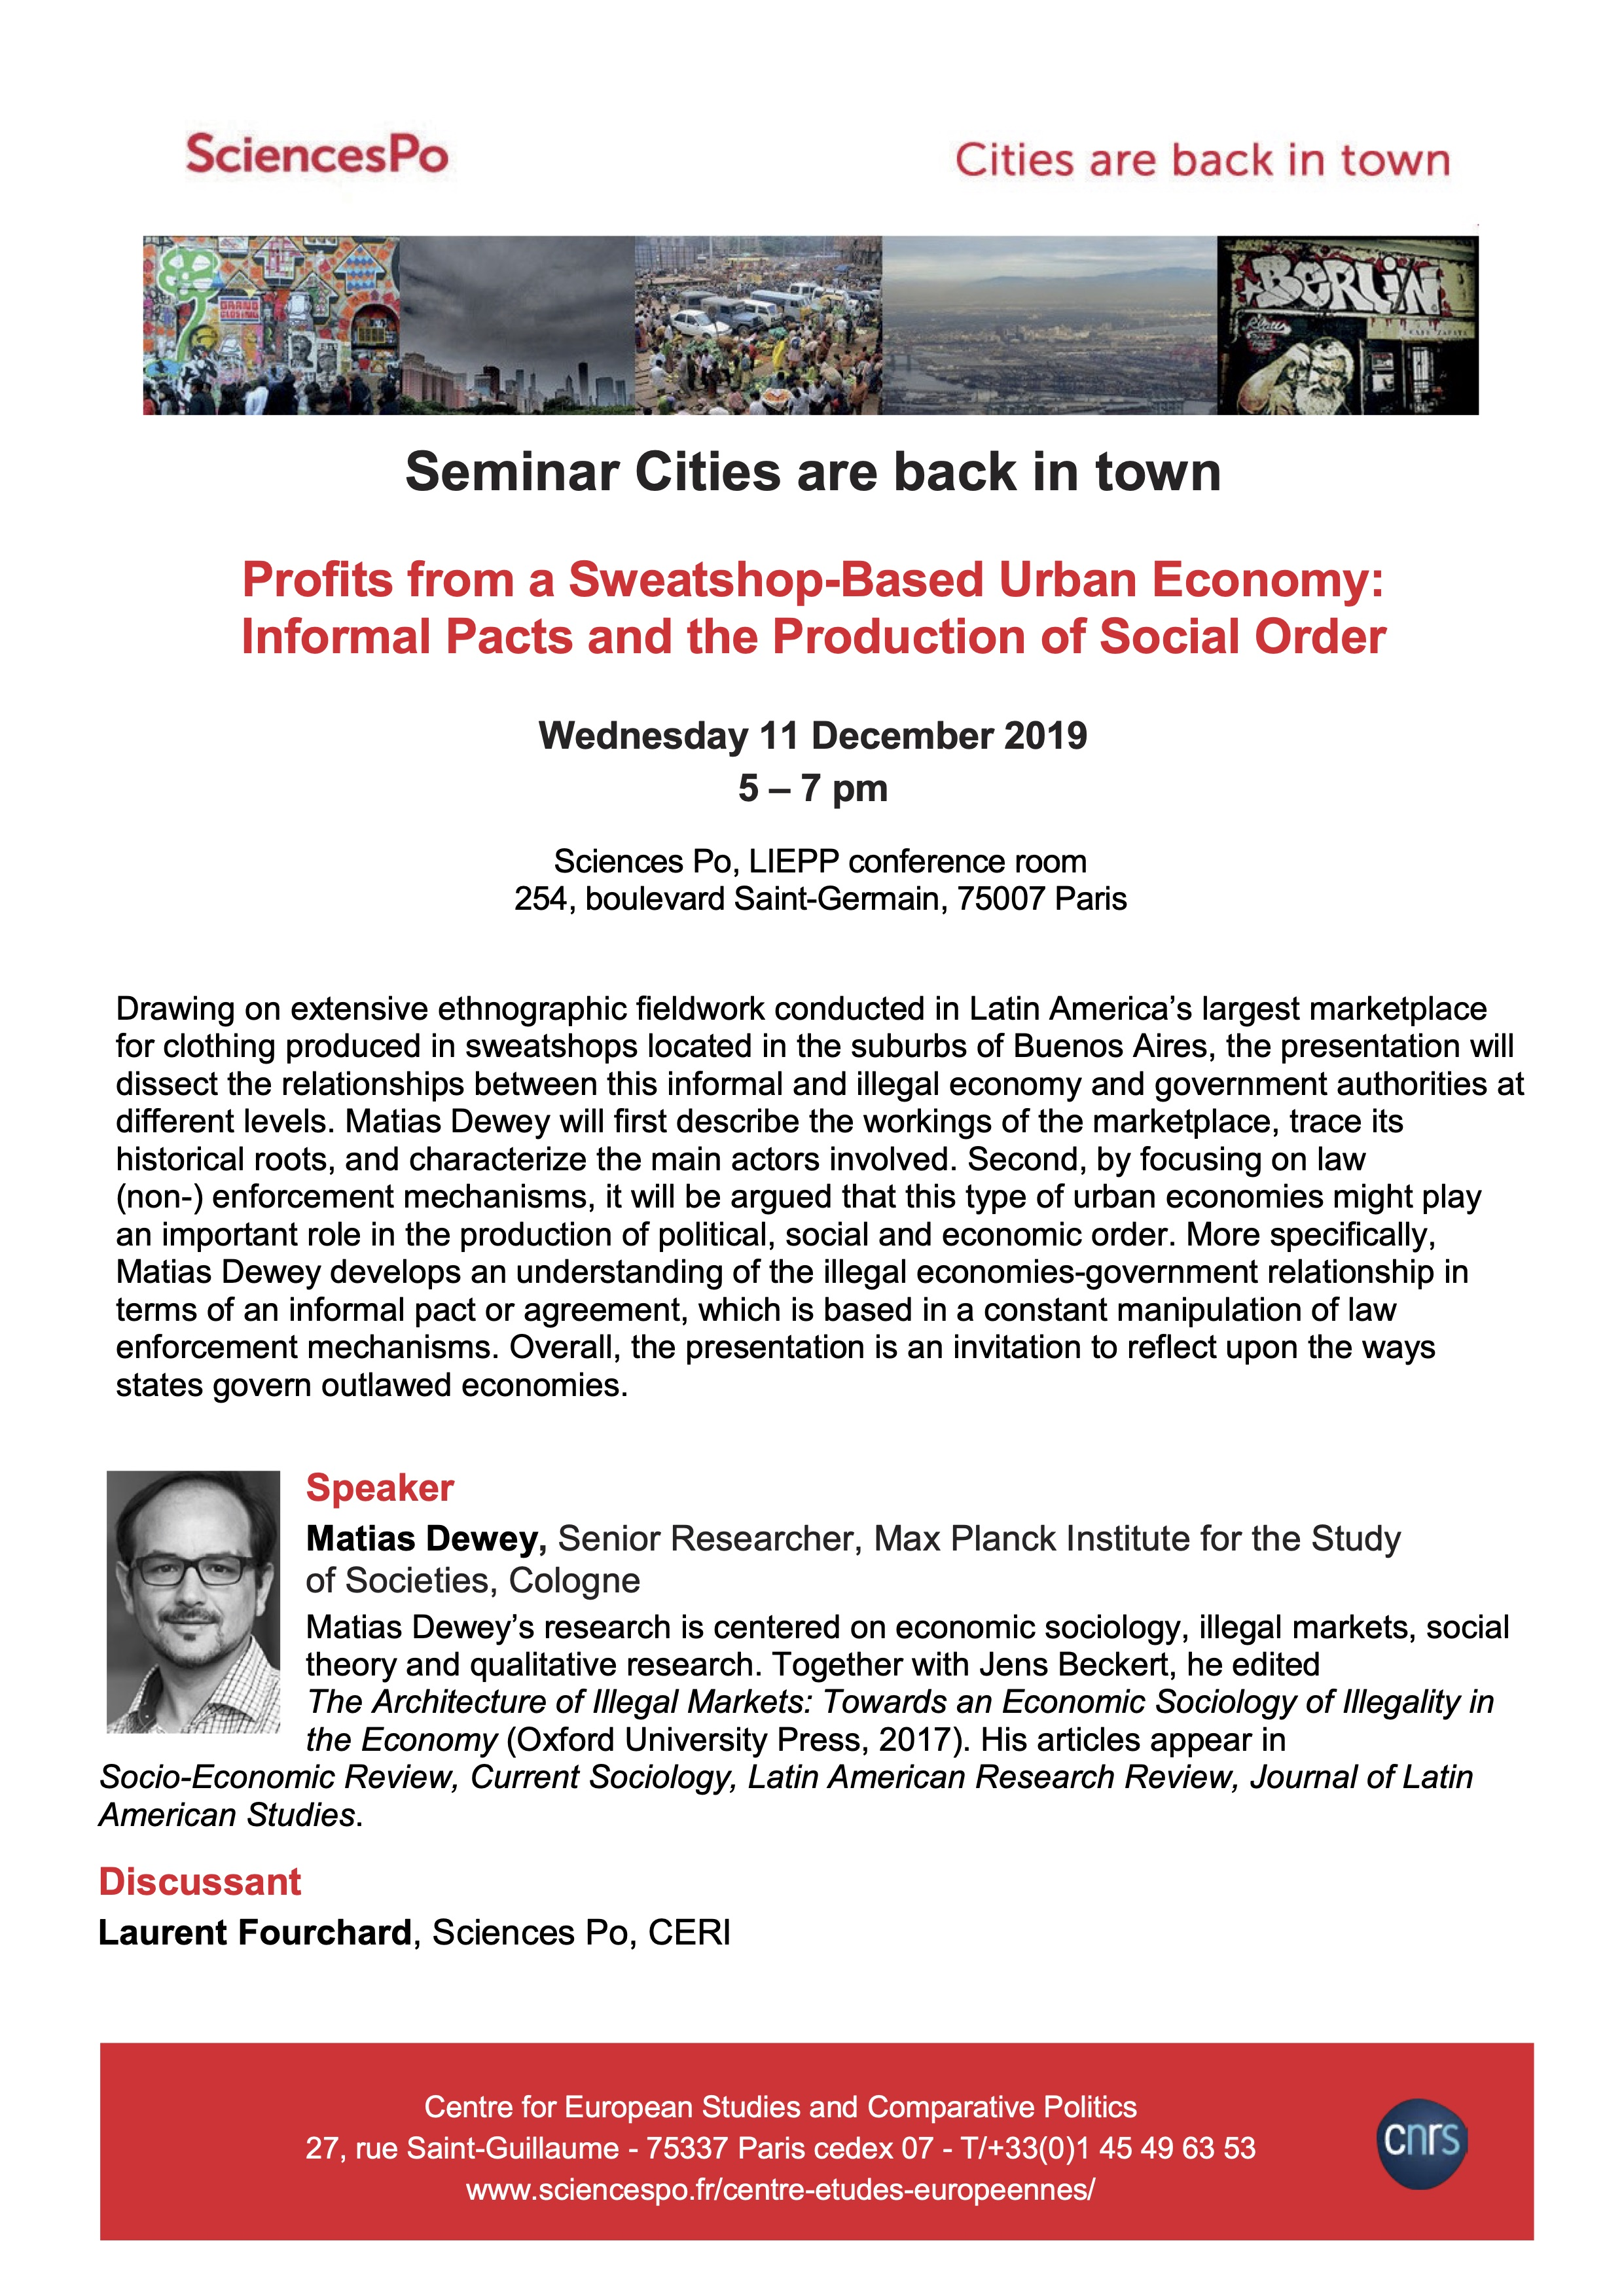 [Séminaire Cities are Back in Town] Matias Dewey, « Profits from a Sweatshop-Based Urban Economy: Informal Pacts and the Production of Social Order », 11 décembre, 17h-19h